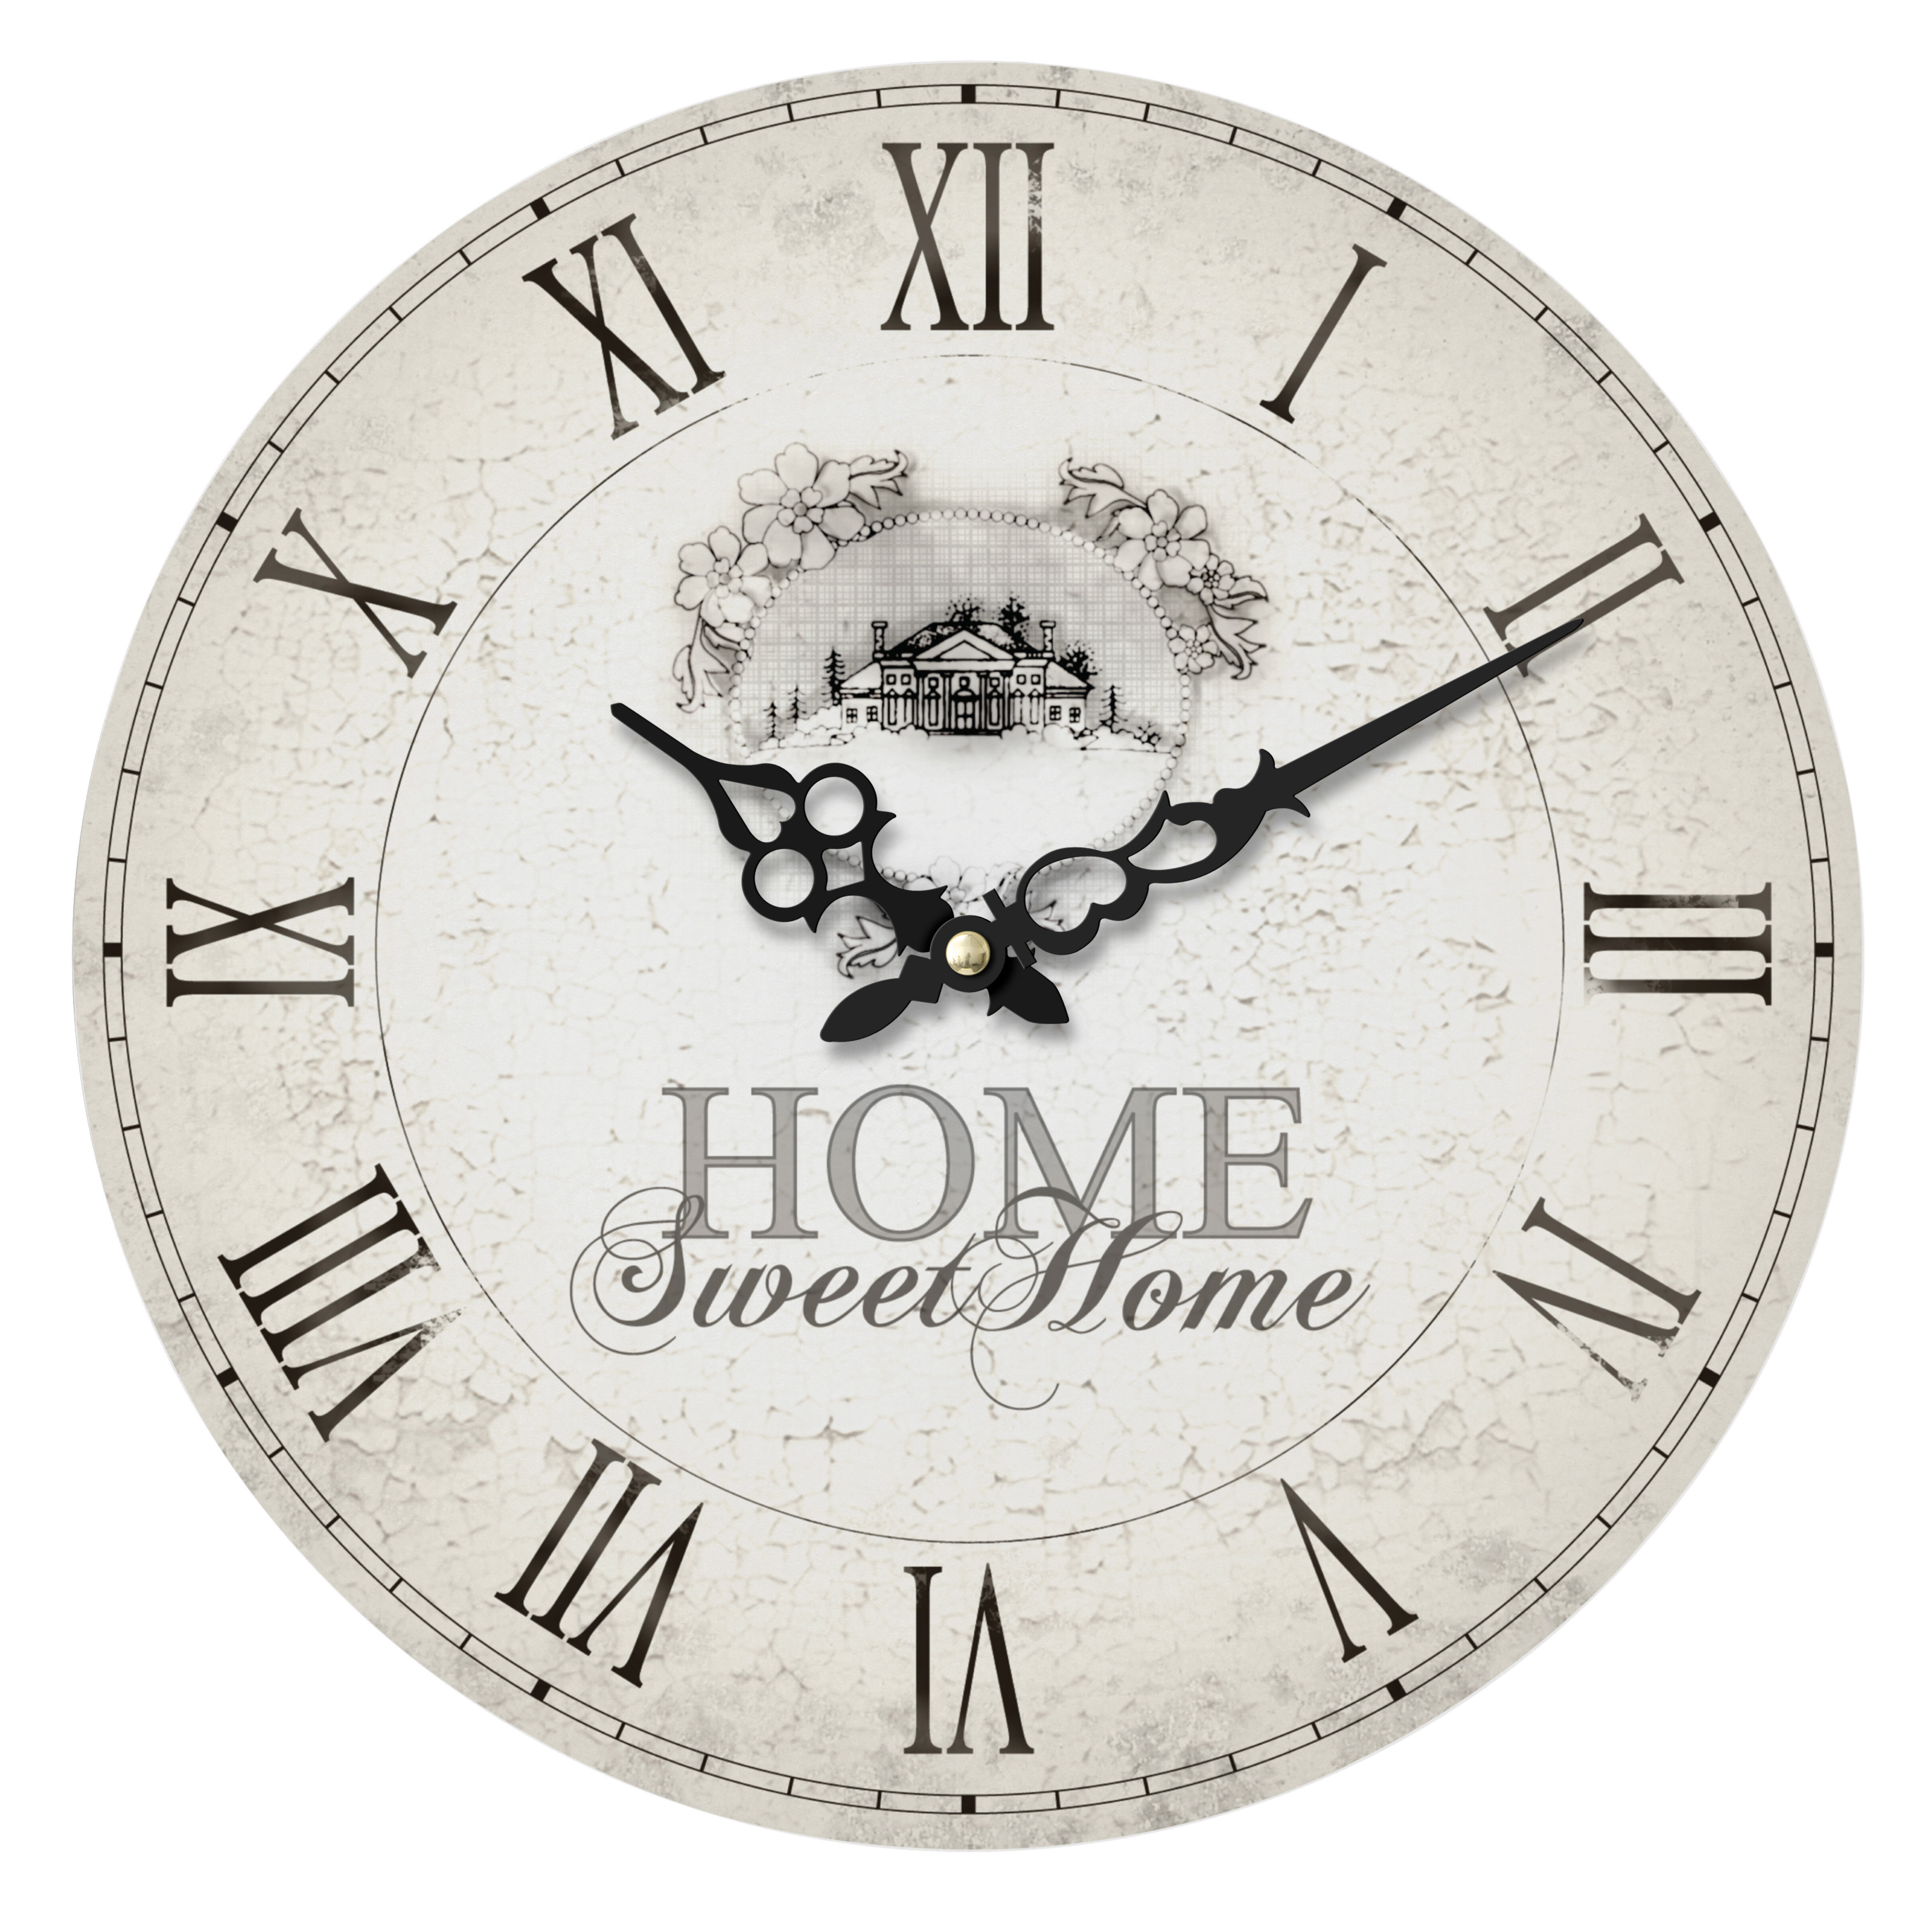 Antiques Antique Clocks Nostalgia Clock Vintage Clock Home Sweet Home English Clock Black Wall Clock